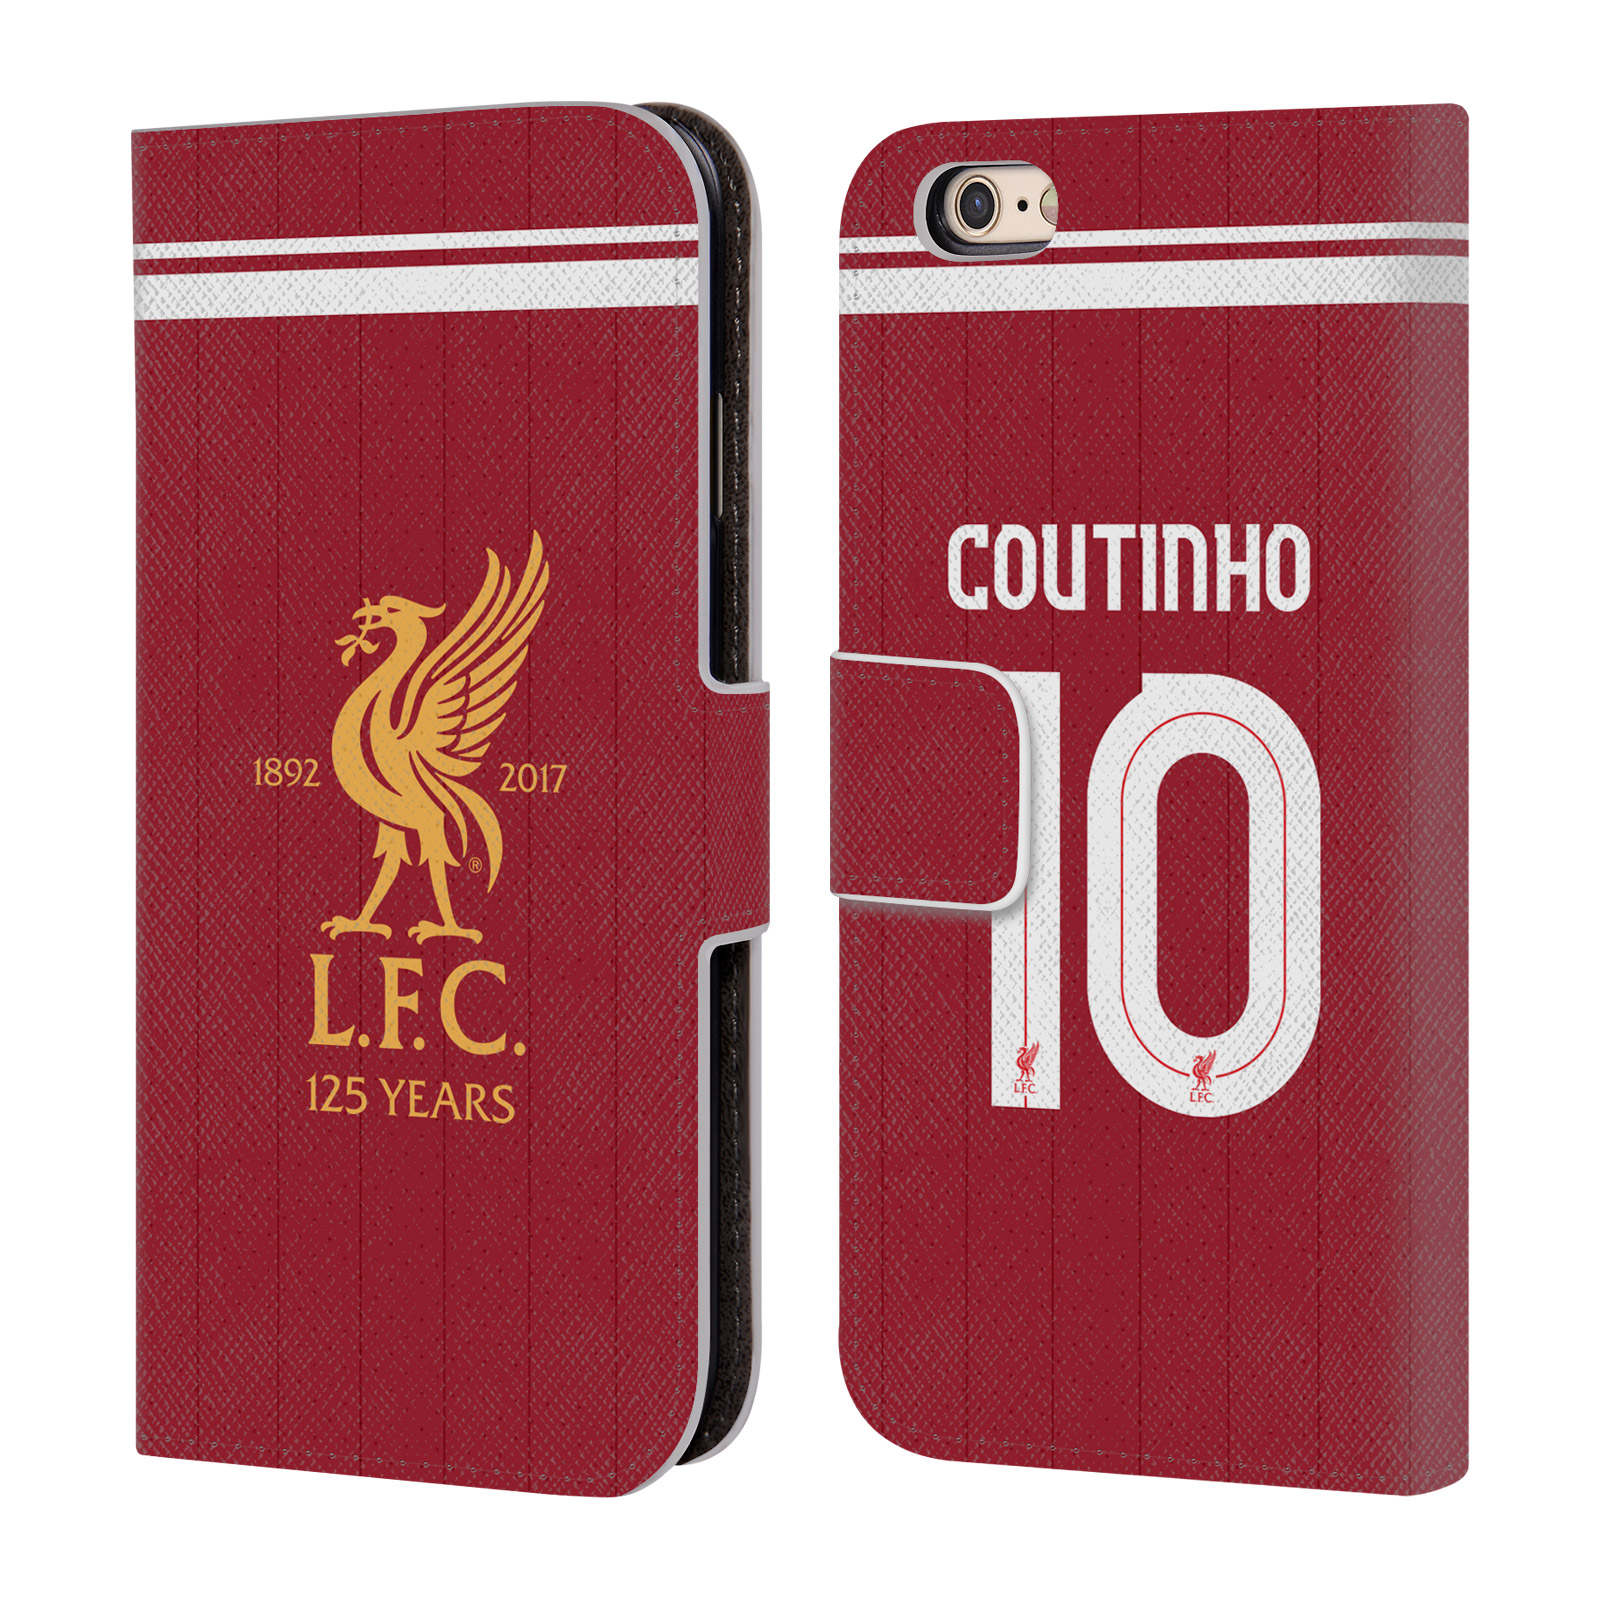 LIVERPOOL-FC-LFC-GIOCATORI-HOME-KIT-17-18-1-COVER-A-PORTAFOGLIO-PER-APPLE-iPHONE